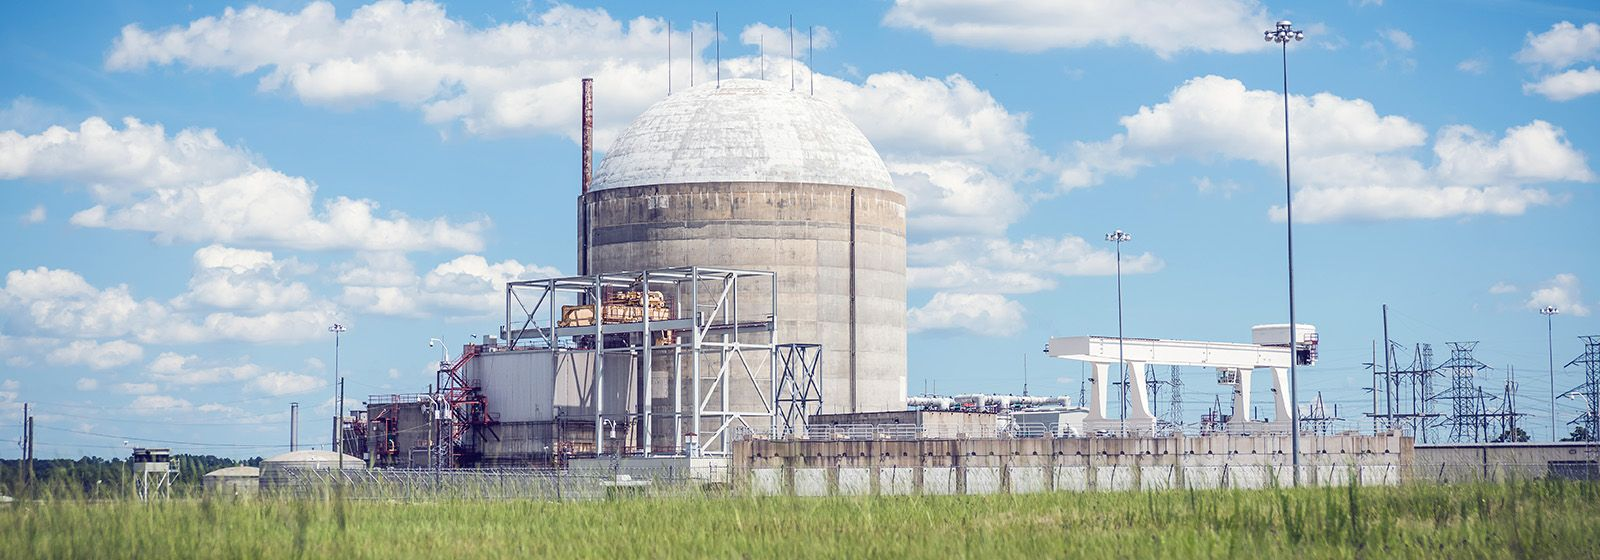 Southeast's first nuclear plant is generating clean energy at age 50